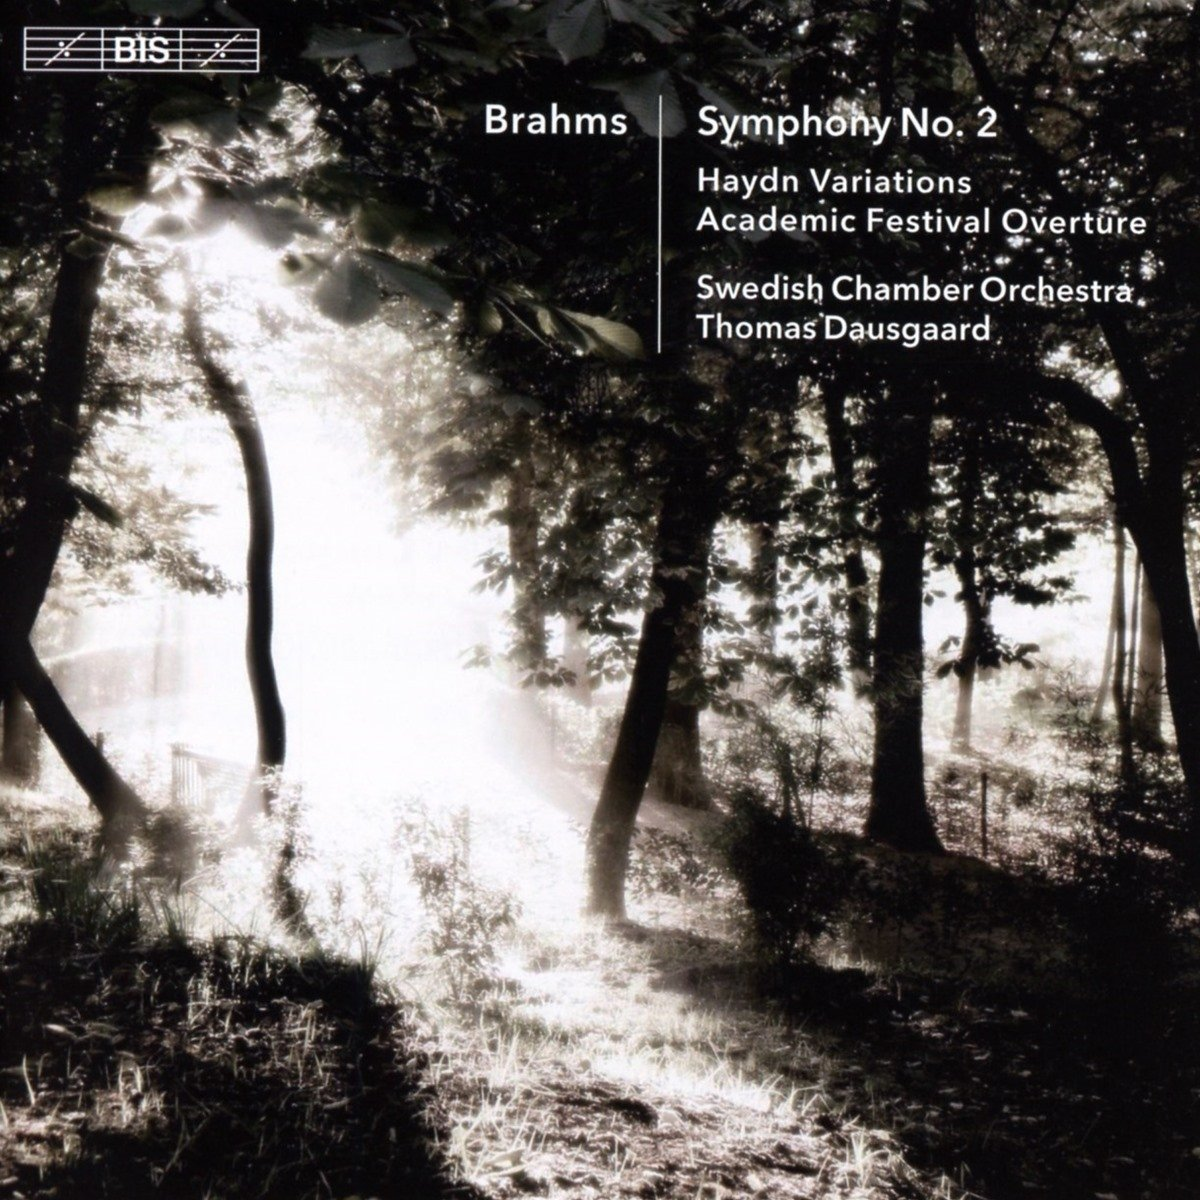 Brahms: Symphony No. 2 - Thomas Dausgaard conducts